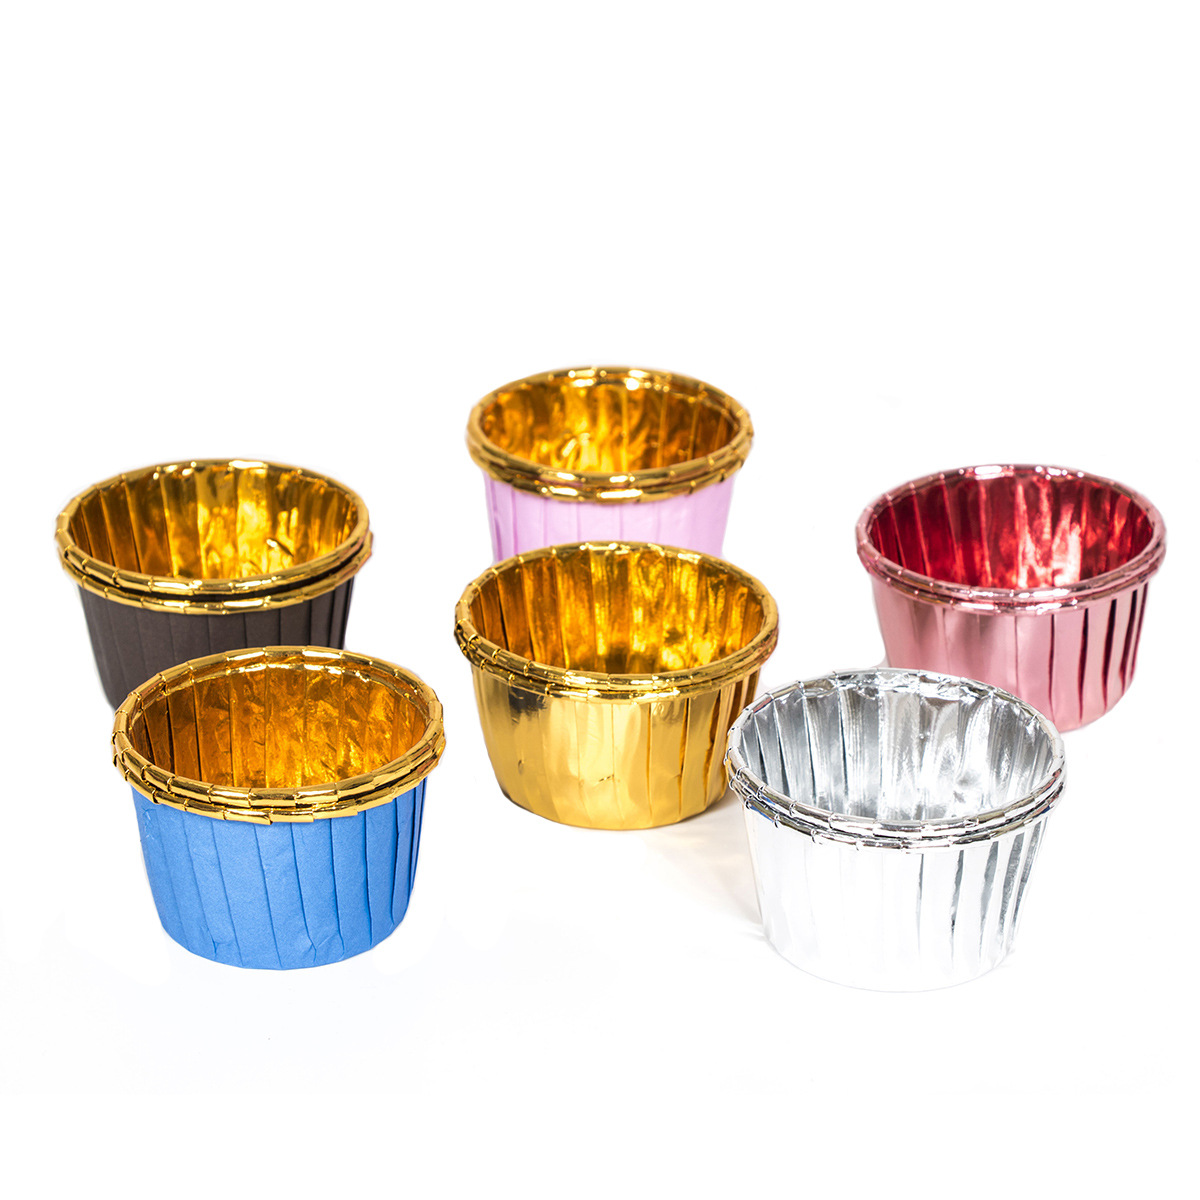 Manufacturers Currently Available 50 PCs Double-Sided Aluminum Muffin Cup Gold High-temperature Resistant Volume Cup Baking Moul